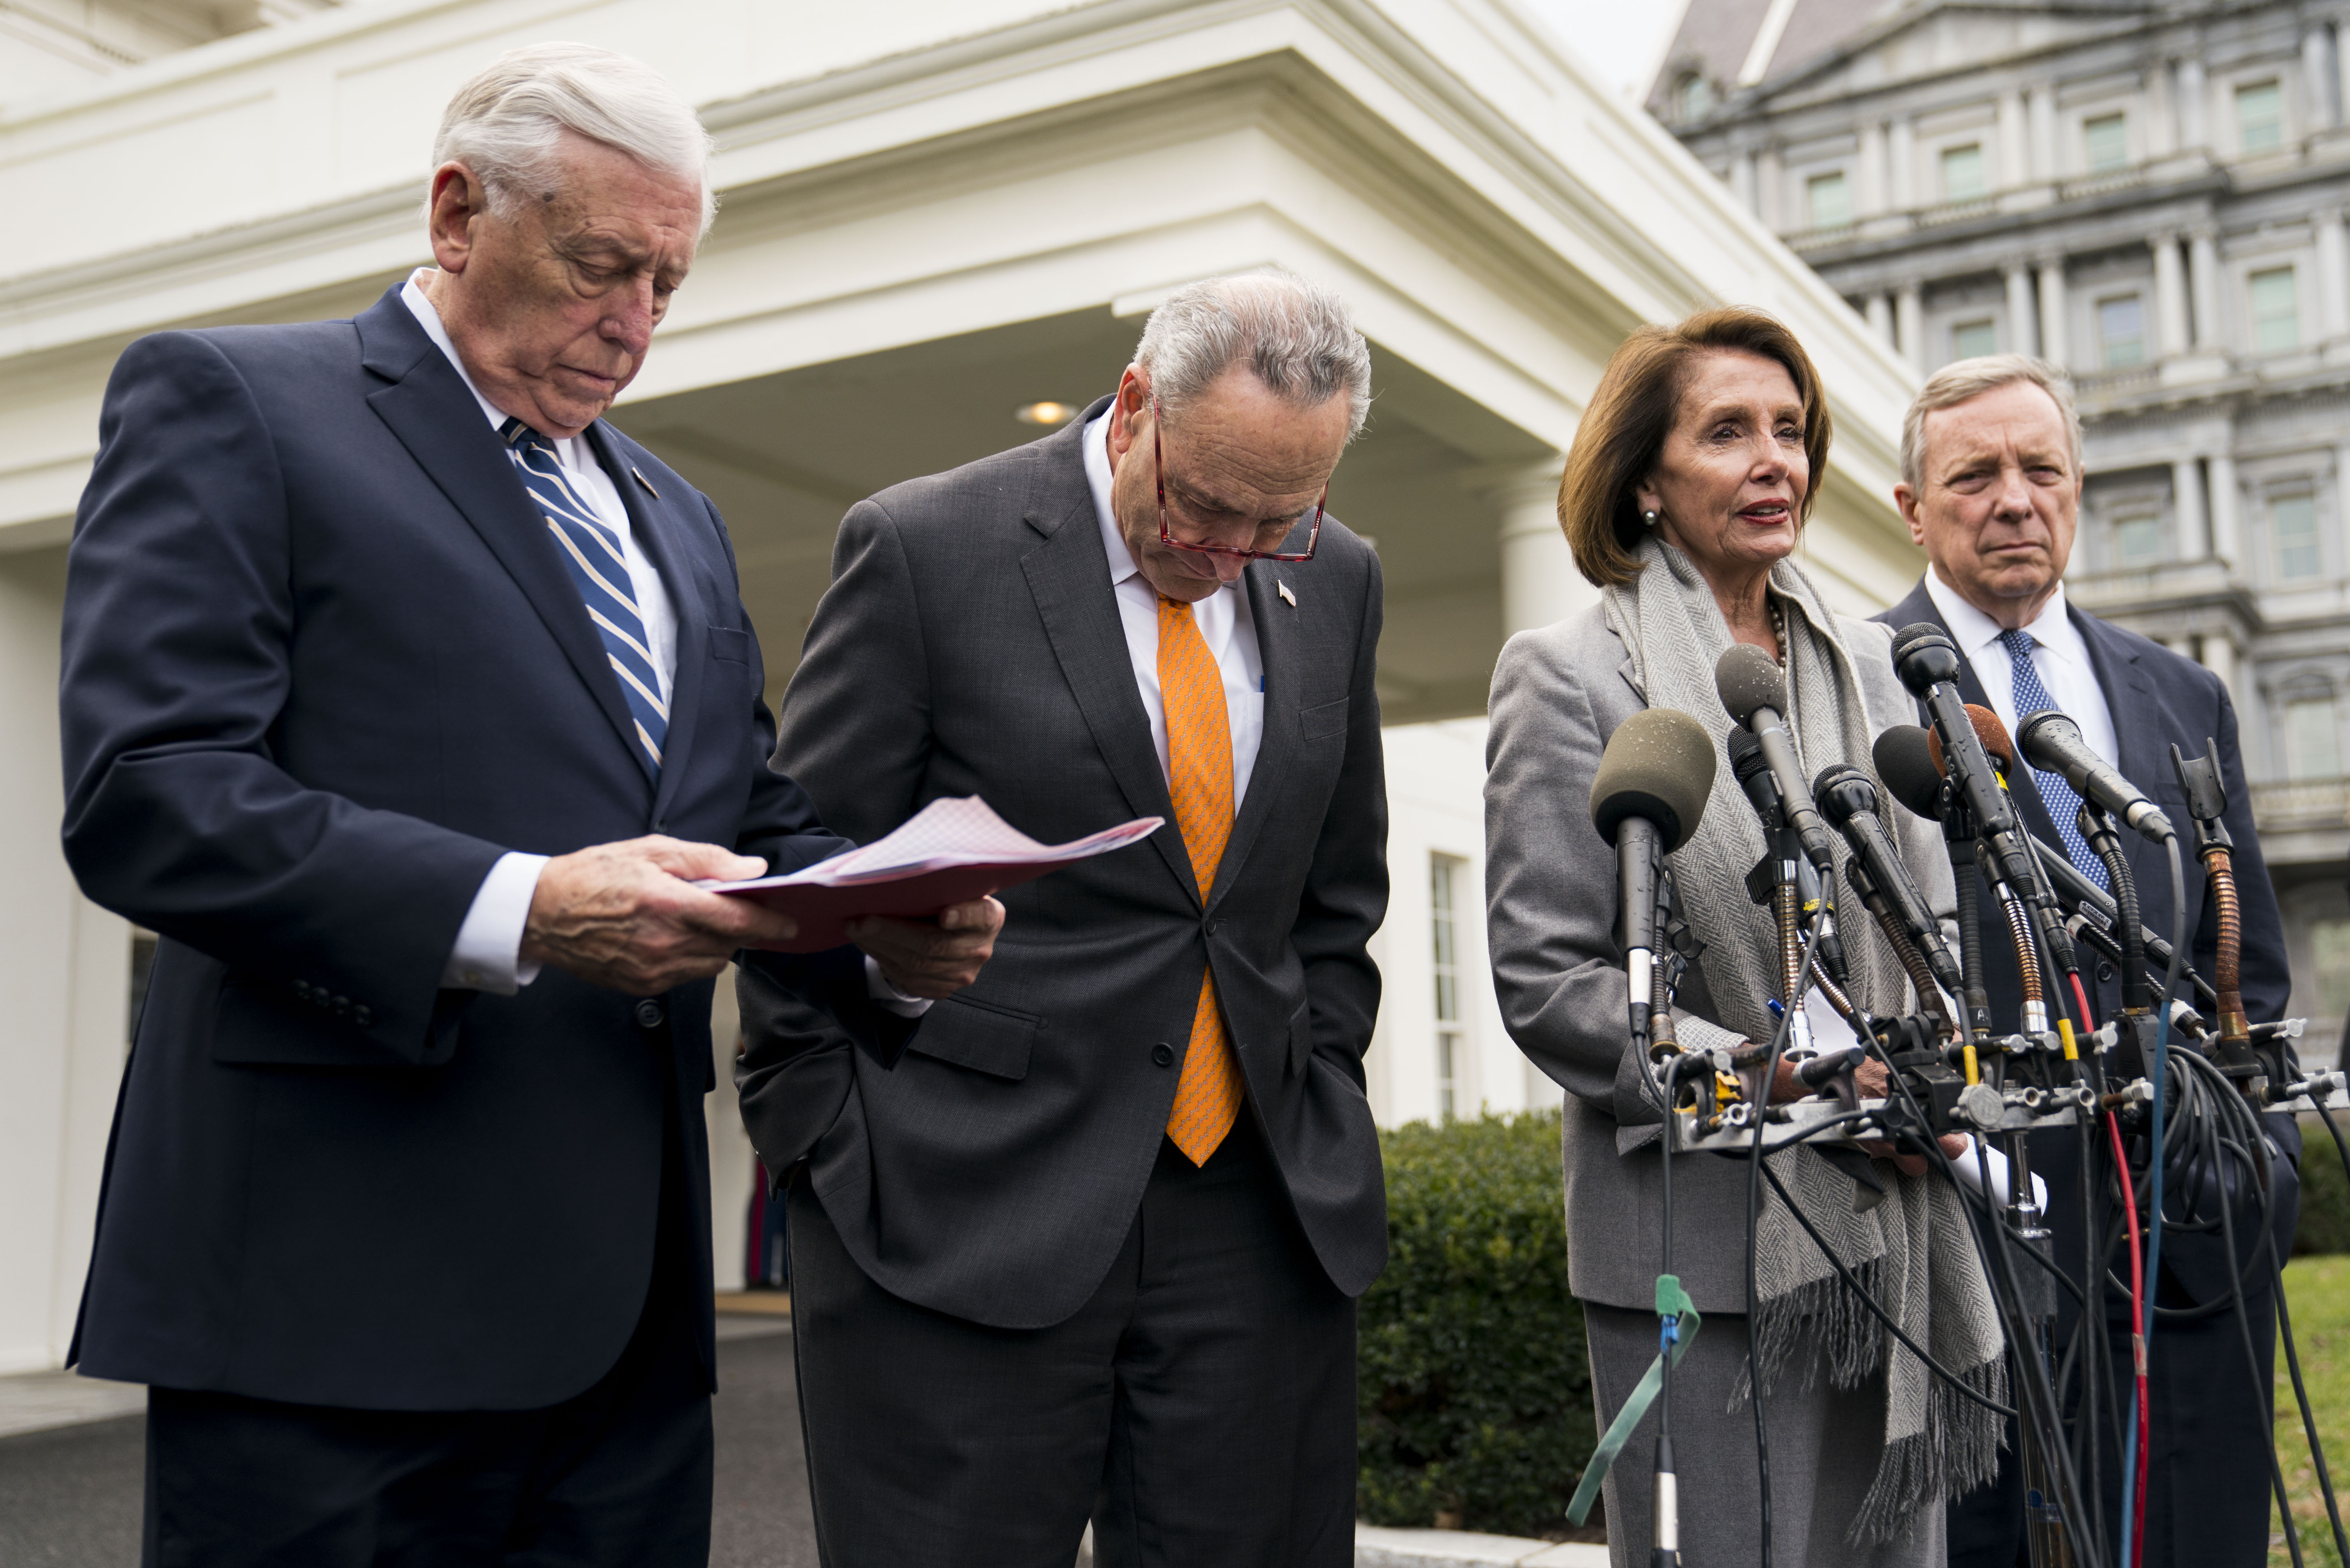 (From left) House Majority Leader Steny Hoyer, Senate Minority Leader Chuck Schumer, House Speaker Pelosi and Sen. Dick Durbin after the meeting with Donald Trump at the White House on Wednesday.